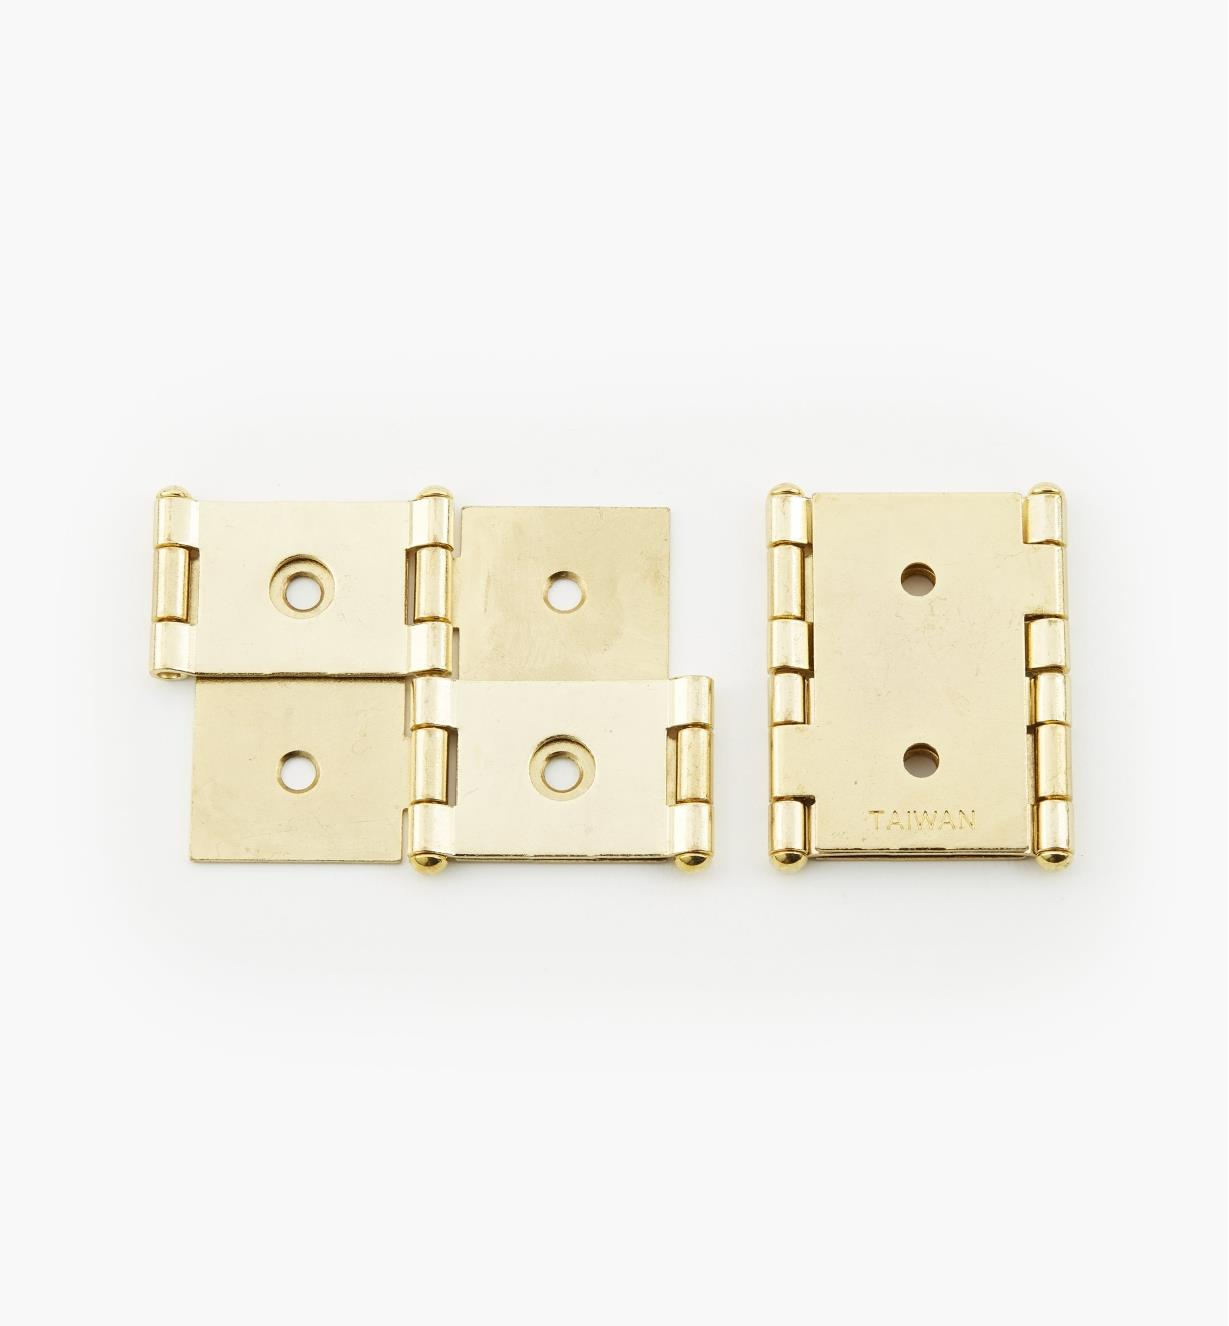 "00H5302 - 1 1/8"" to 1 1/4"" Screen Hinges, pr."